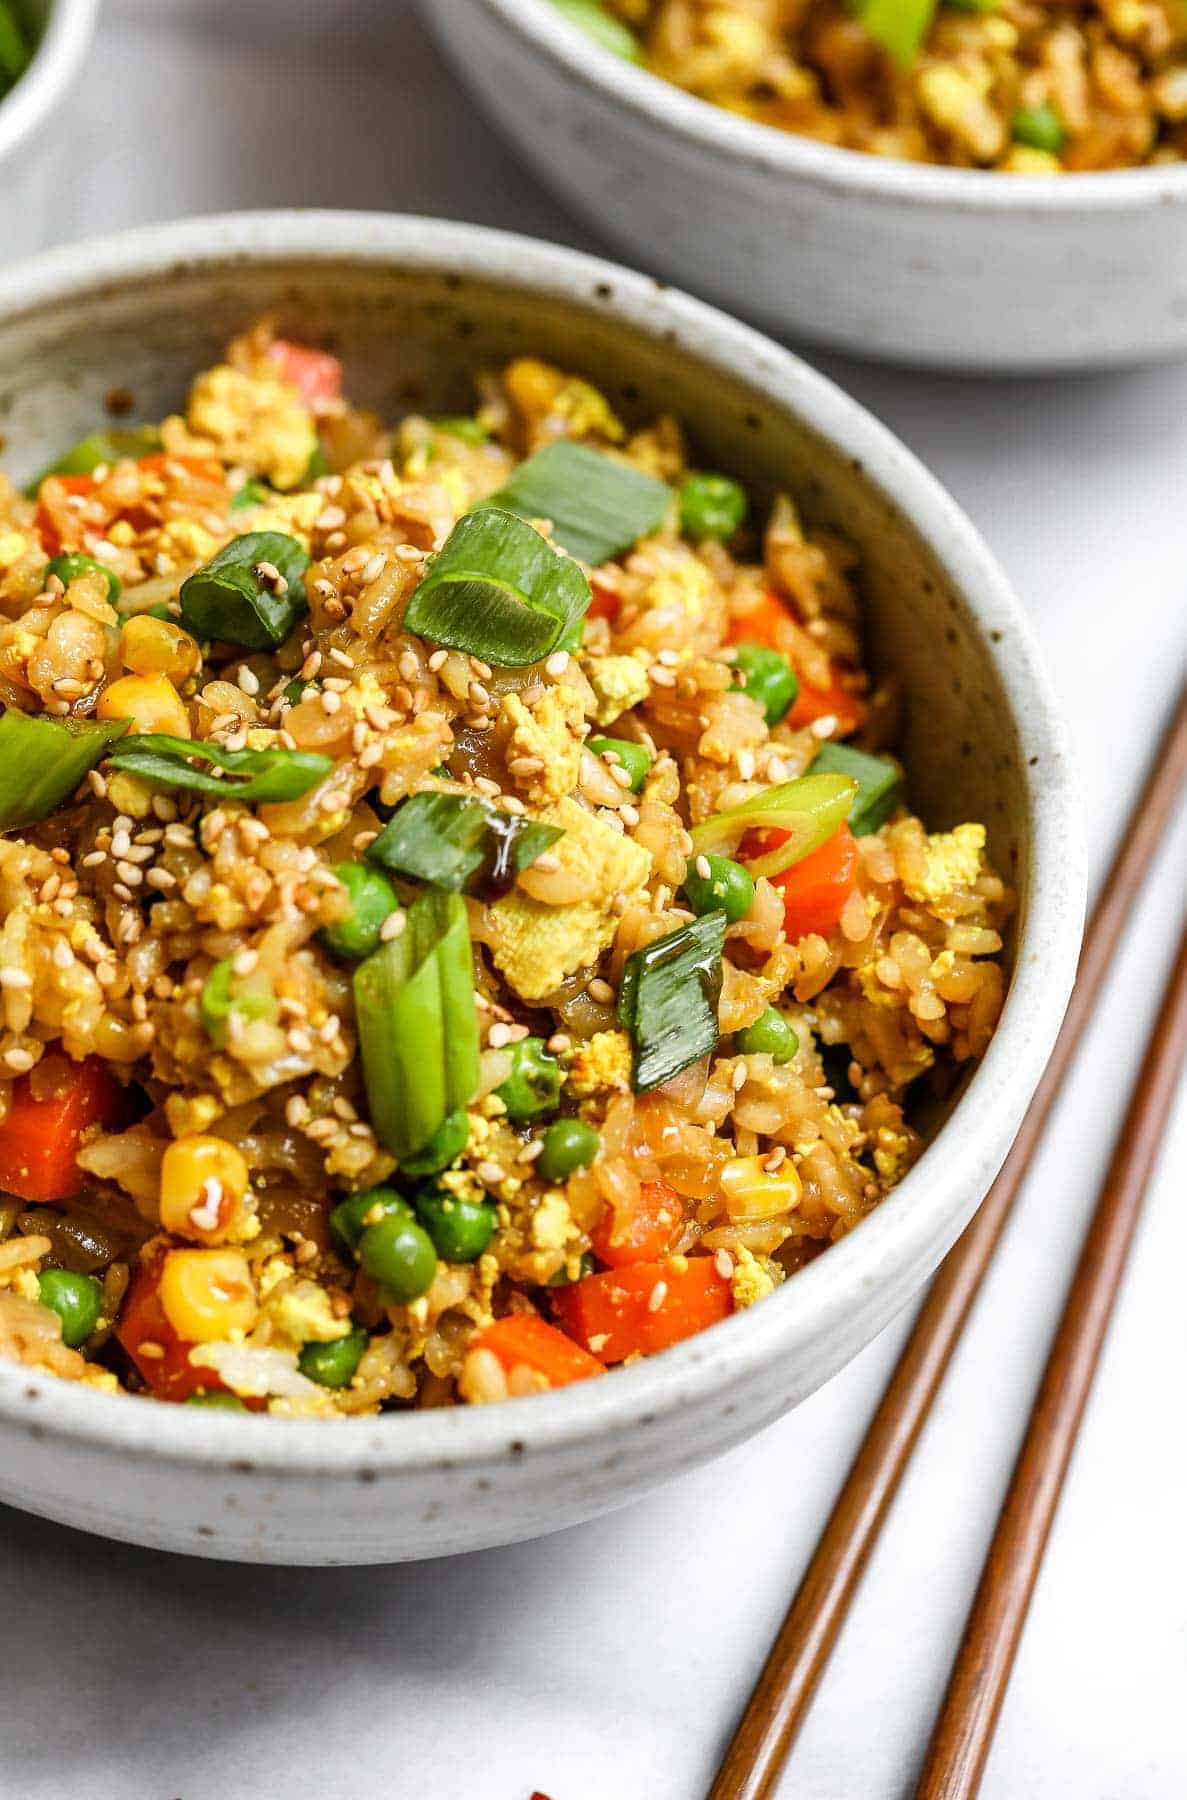 Angled view of vegan fried rice with chopped scallions on top.